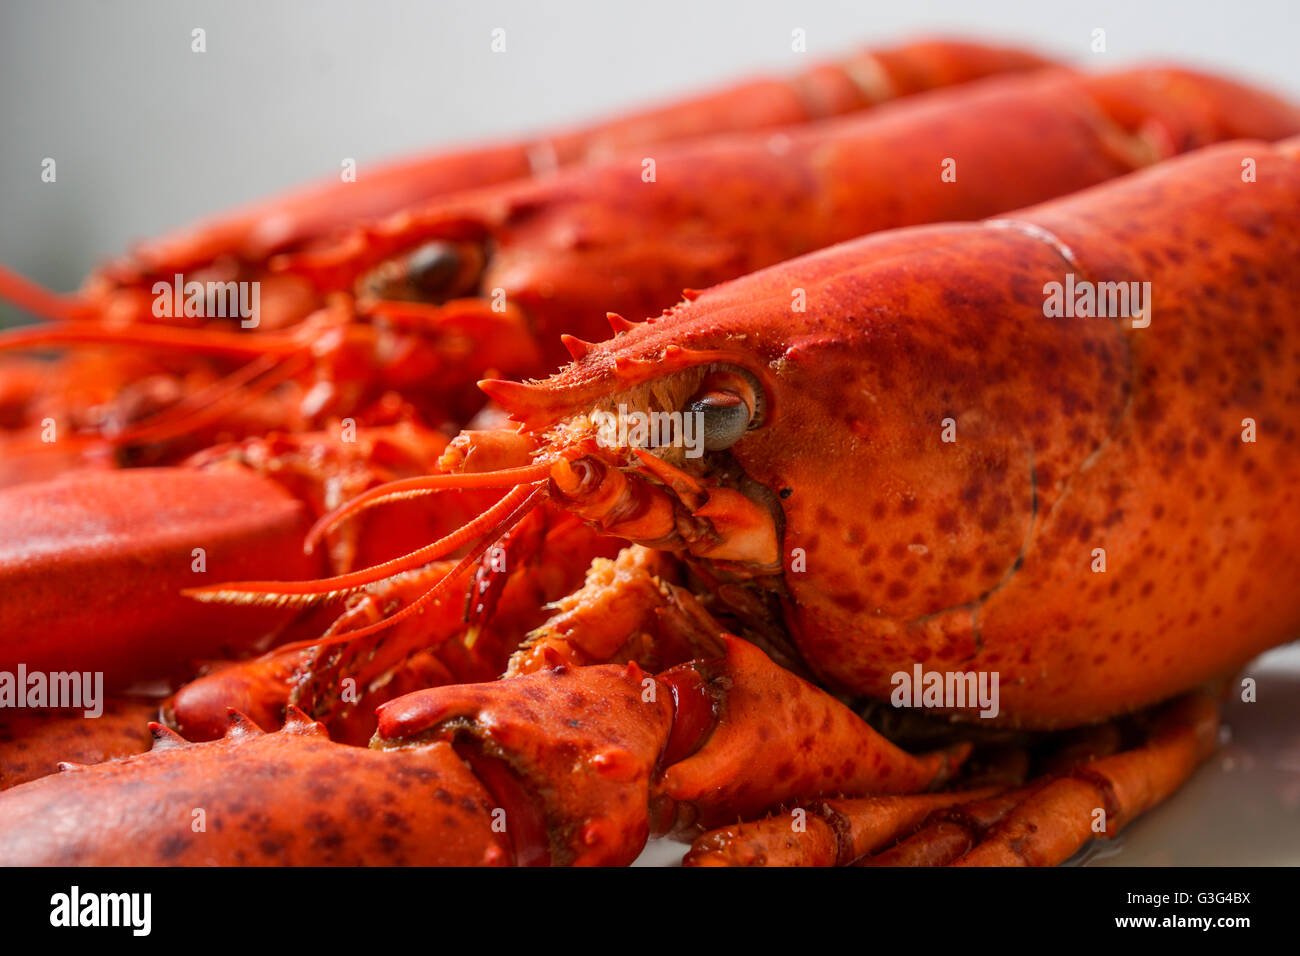 Cooked red Lobsters served on white plate ready for eating - Stock Image